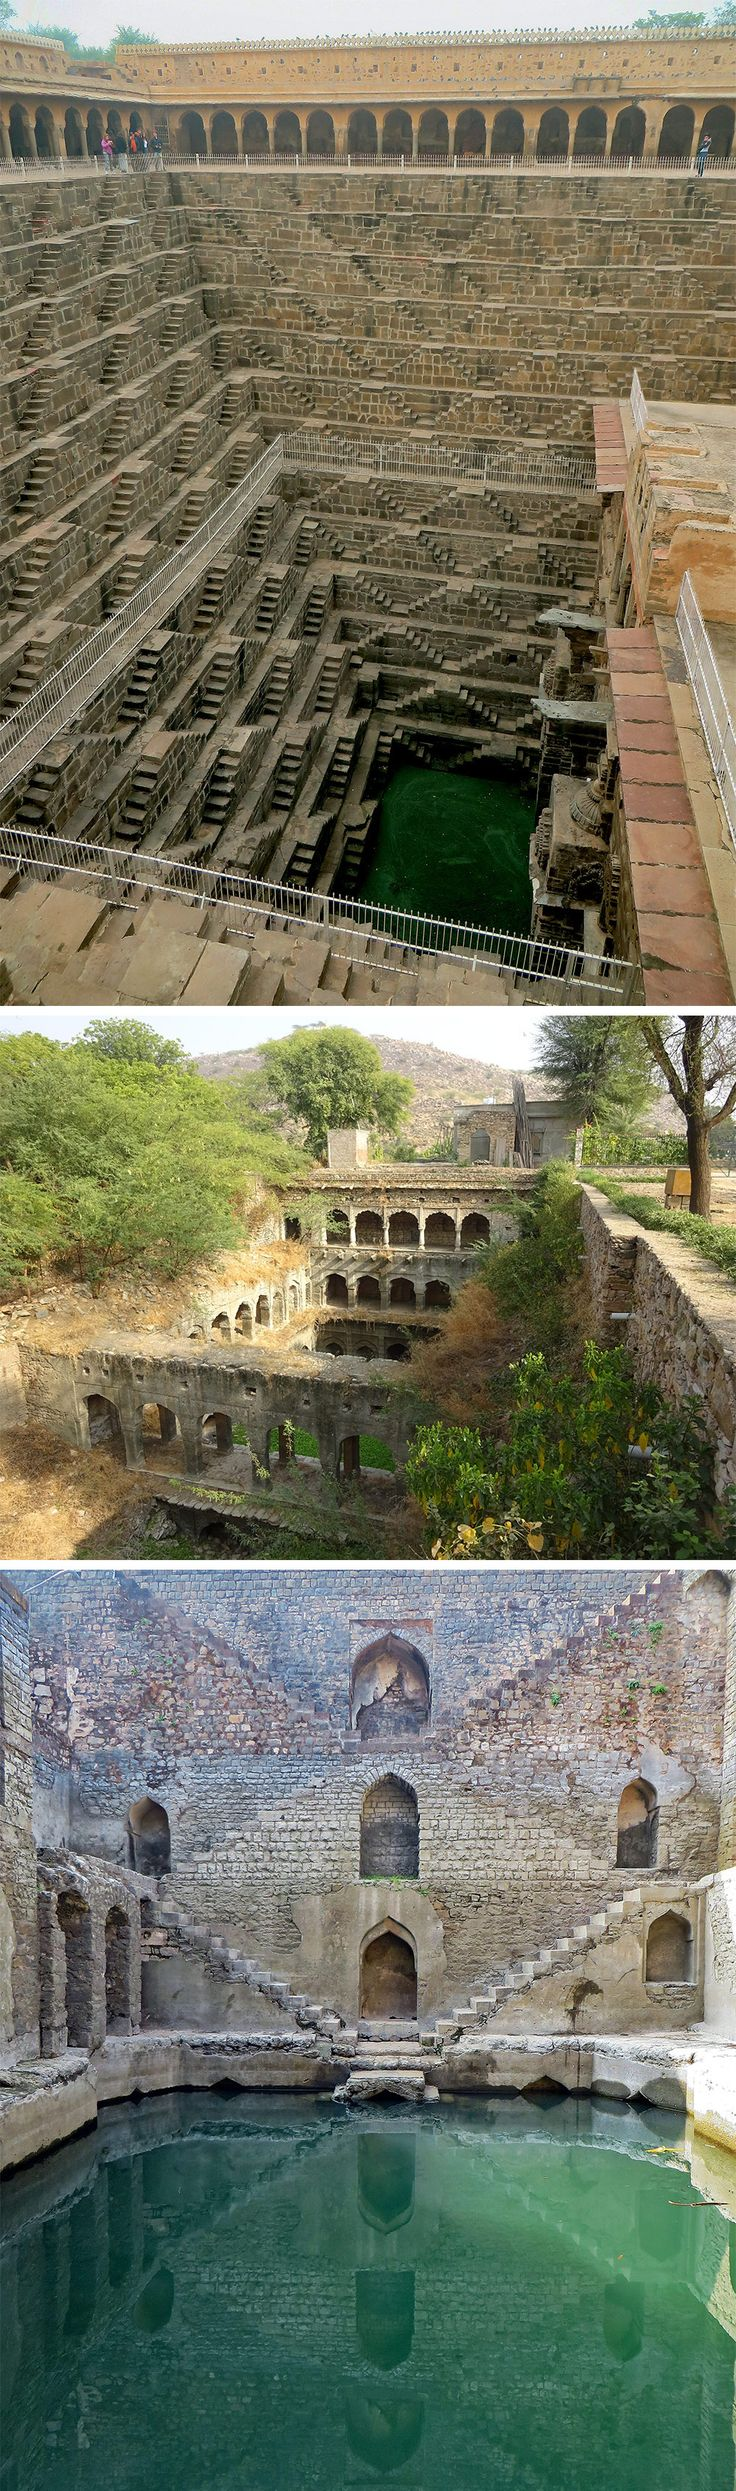 The Vanishing Stepwells Of India: A New Book By Victoria Lautman Documents  The Fading Relics